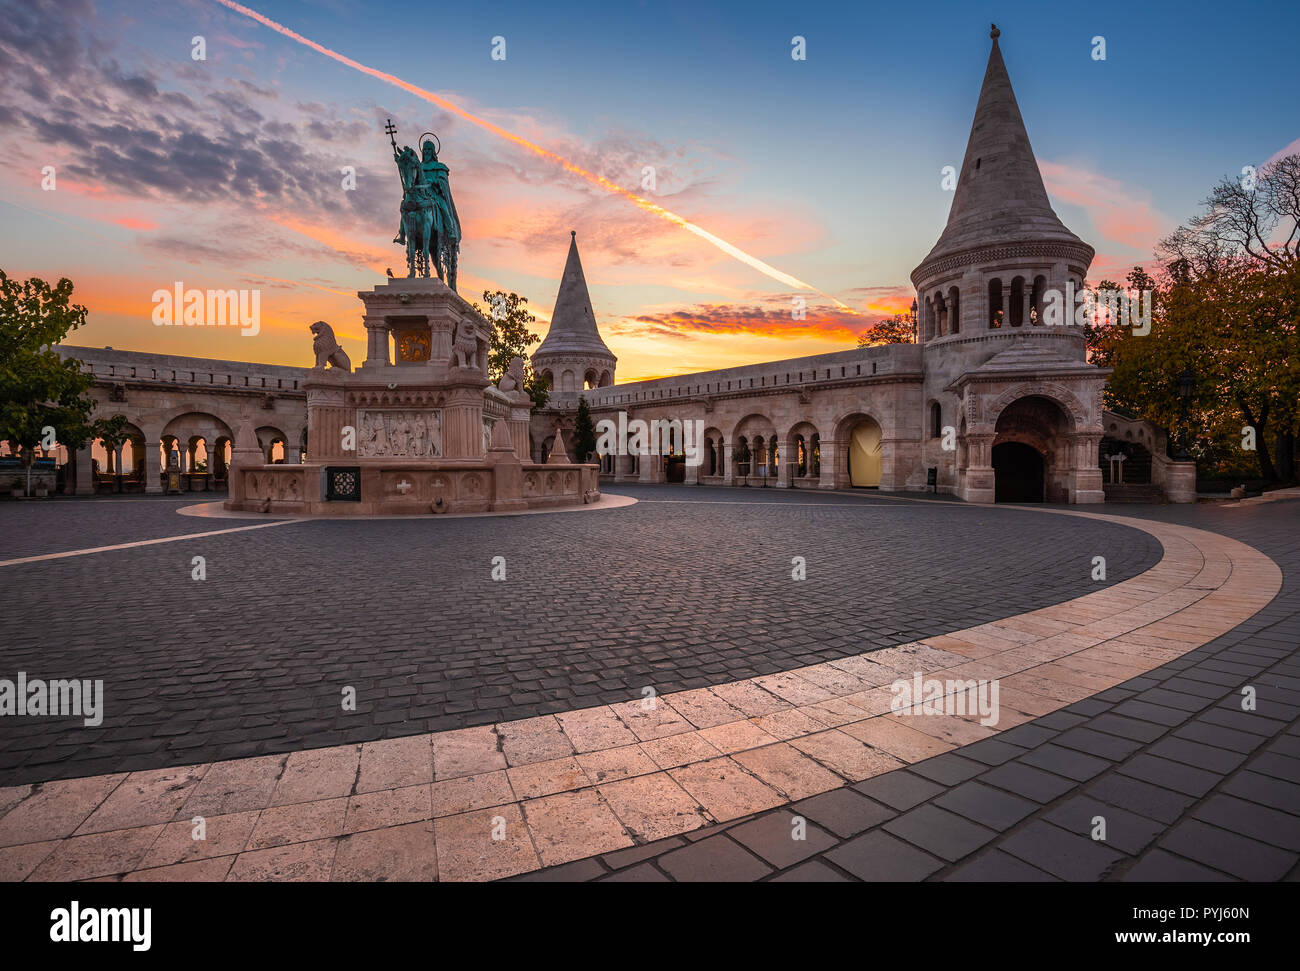 Budapest, Hungary - Autumn sunrise at the Fisherman's Bastion with King Stephen I statue and beautiful sky and clouds Stock Photo